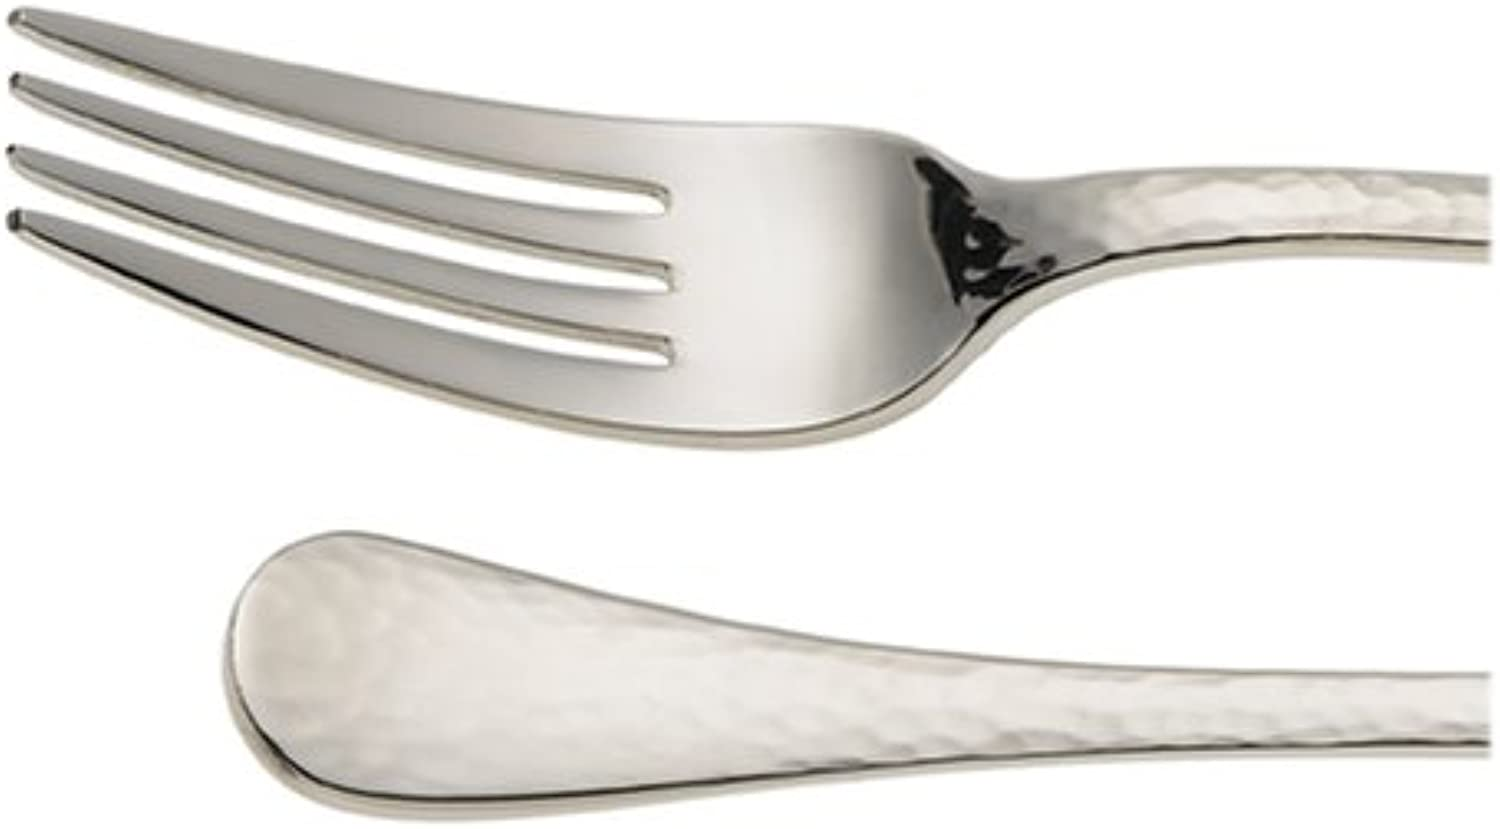 Ginkgo International Lafayette 20-Piece Stainless Steel Flatware Set, Service for 4